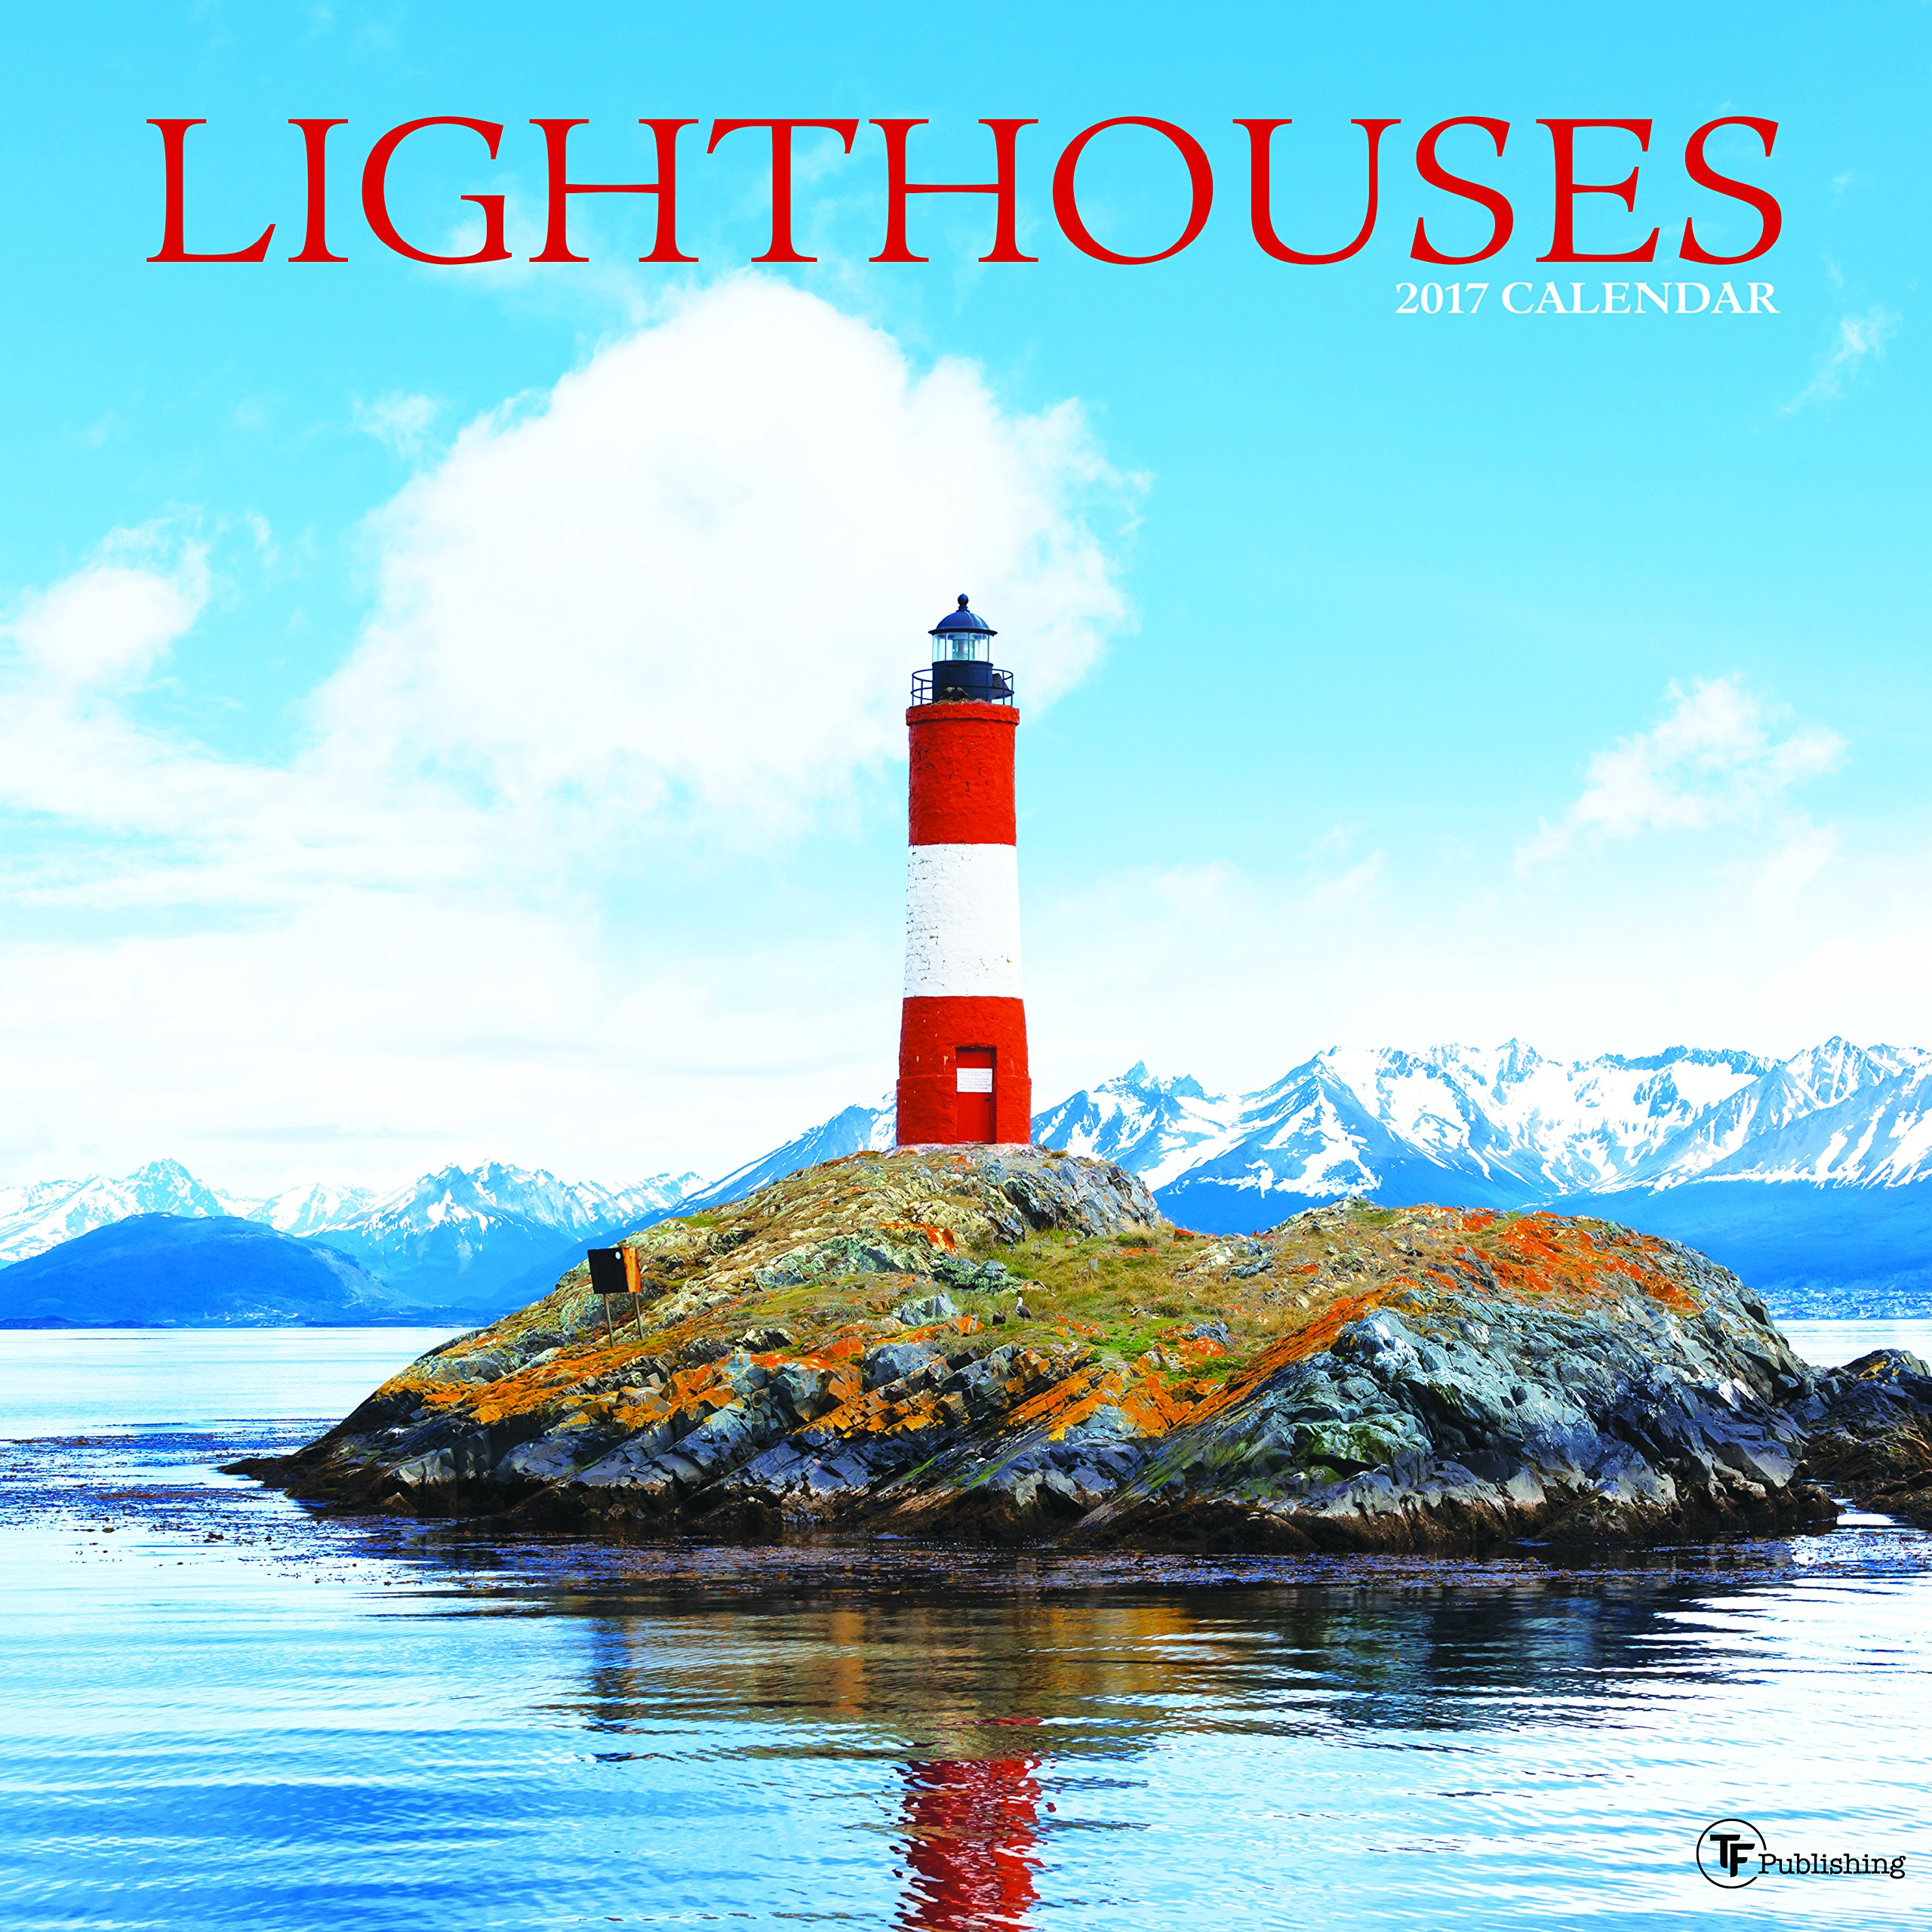 2017 Lighthouses Wall Calendar Calendar – Wall Calendar, August 20, 2016 TF Publishing Time Factory 162438689X 17-1098